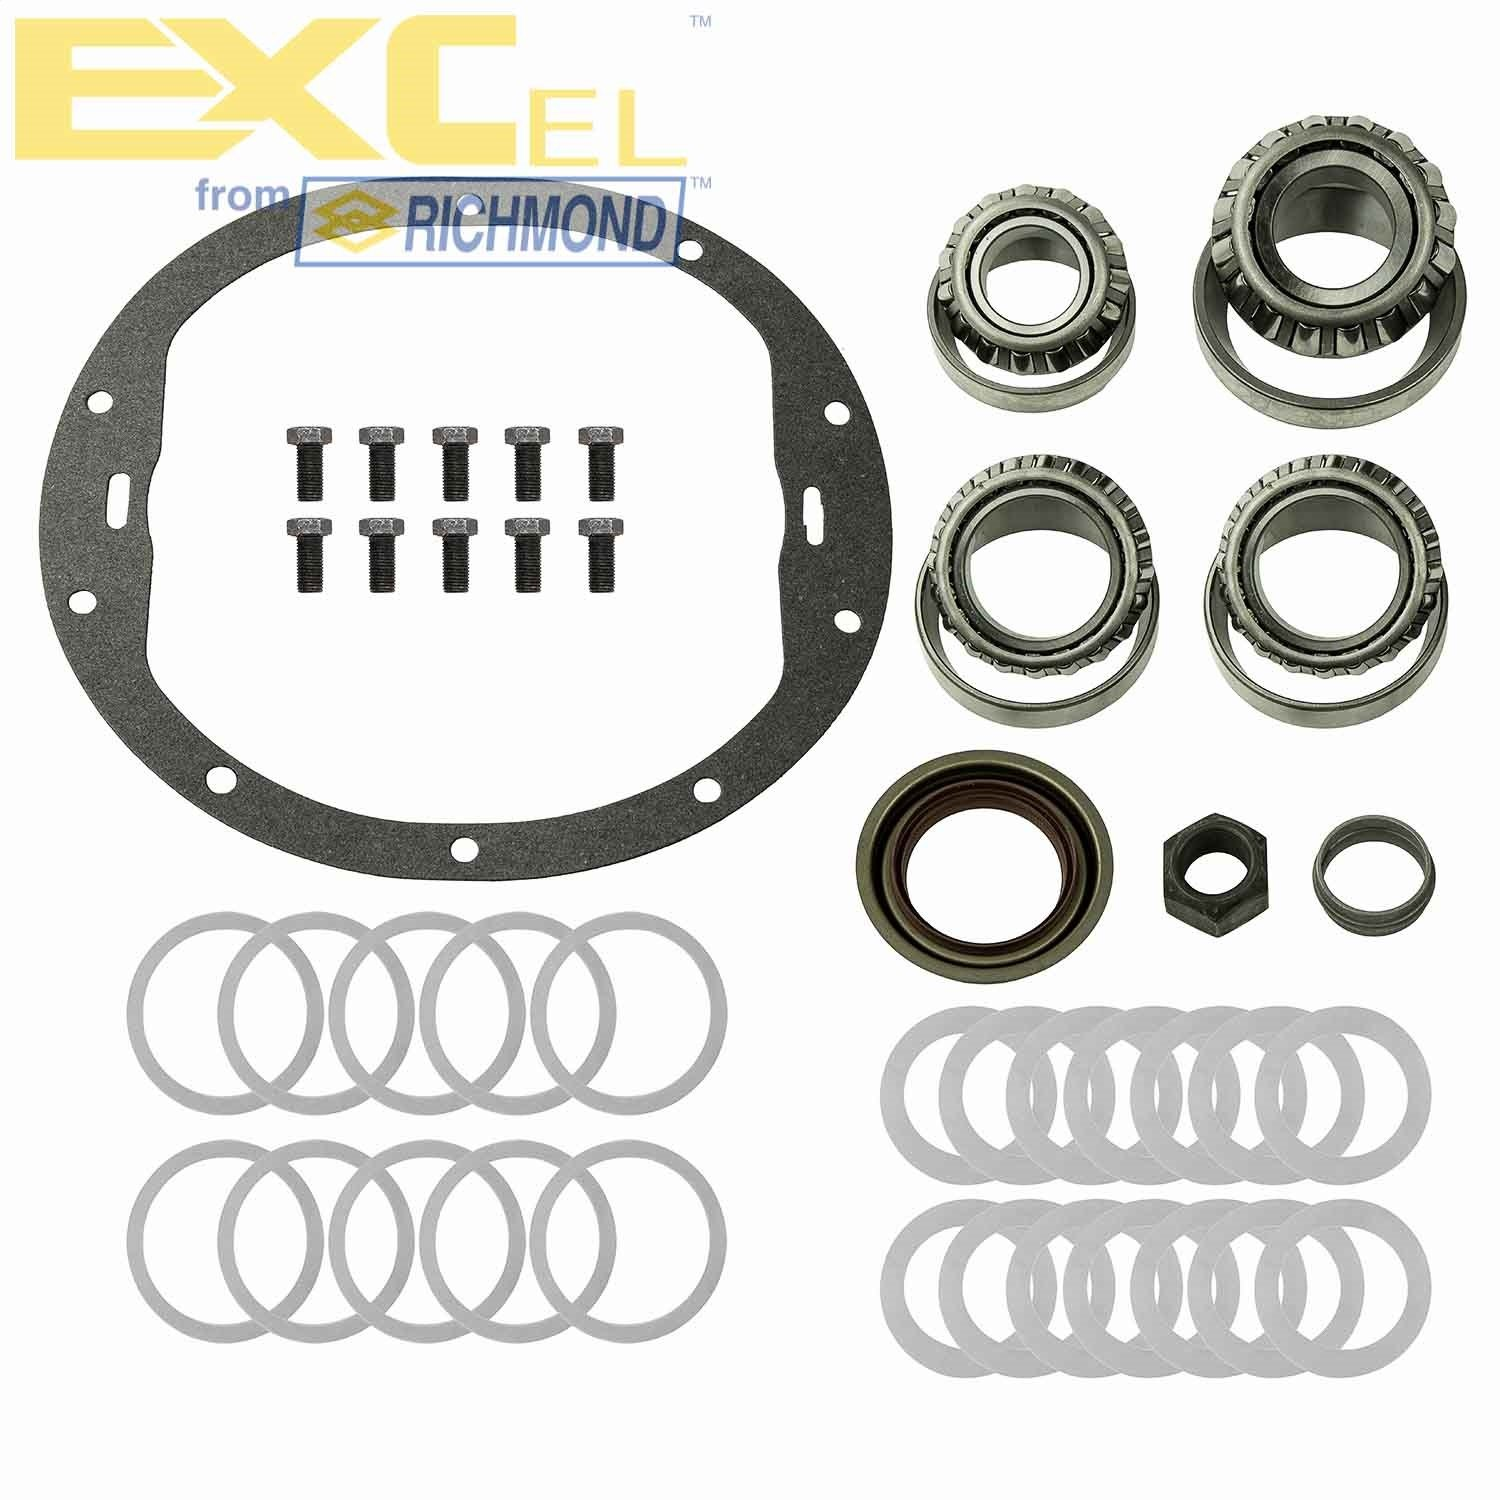 ExCel XL-1027-1 Ring and Pinion Install Kit (-GM 8.6' 10 Bolt), 1 Pack